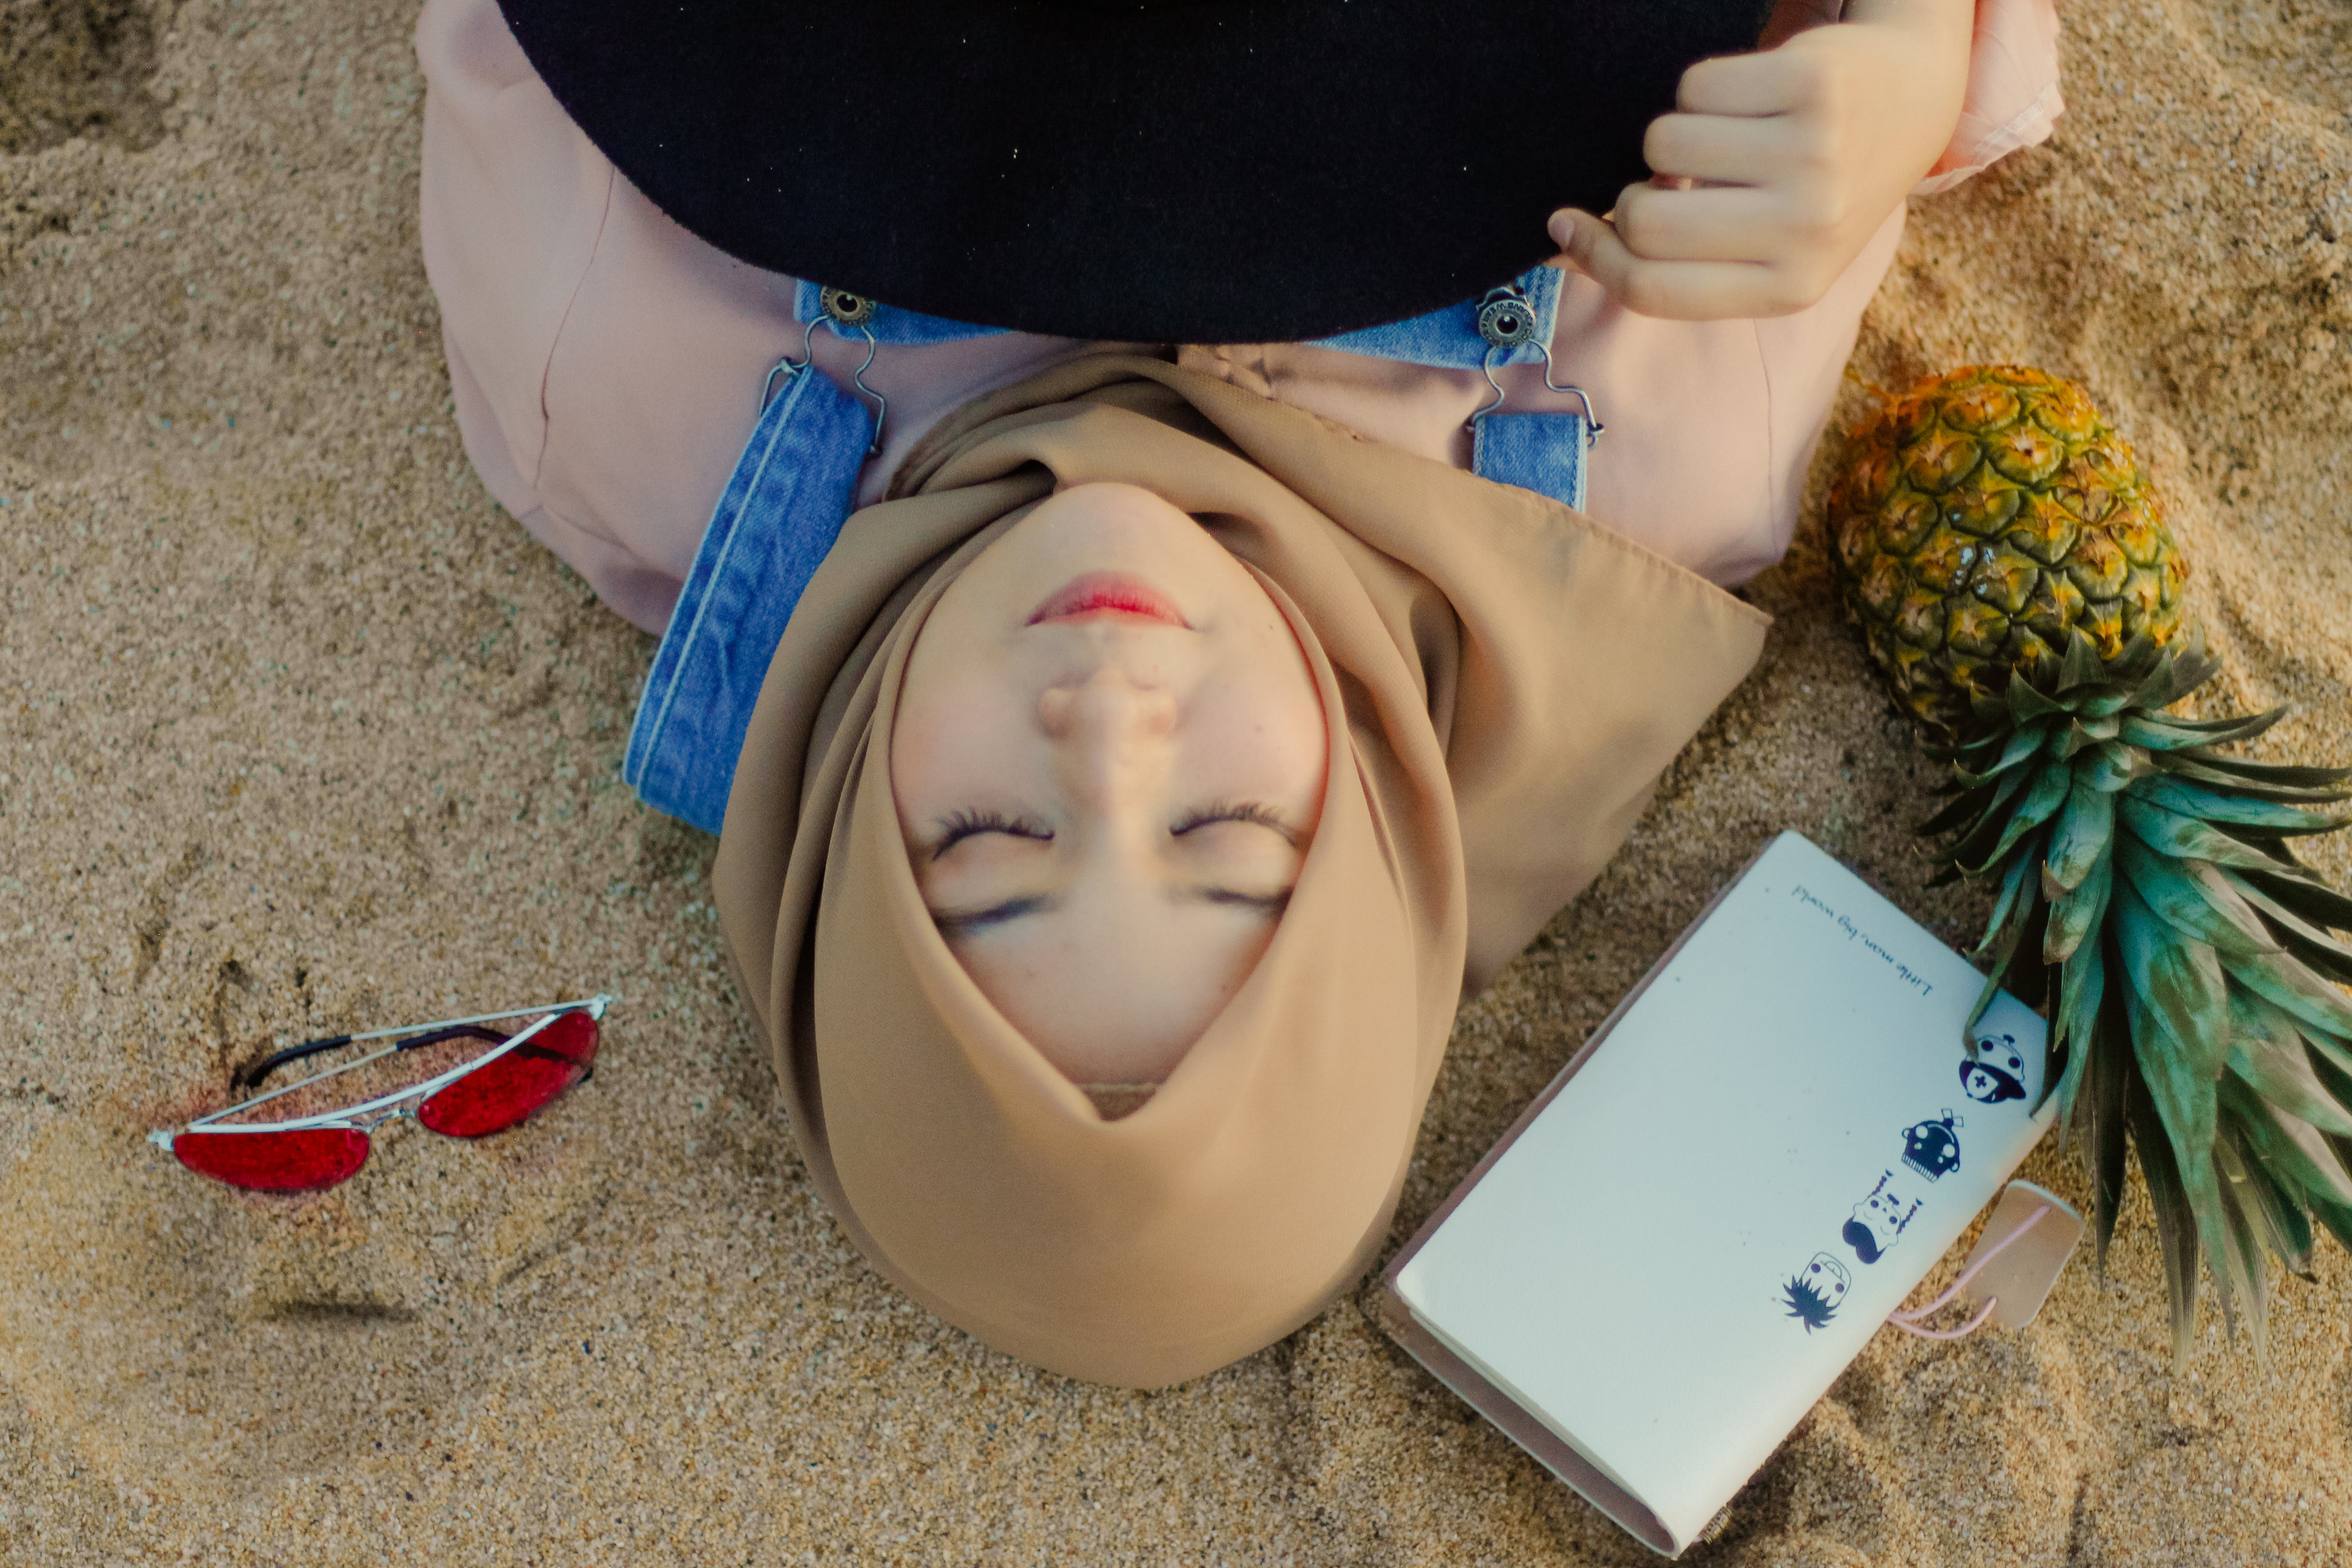 Woman Lying on Sand Beside Sunglasses